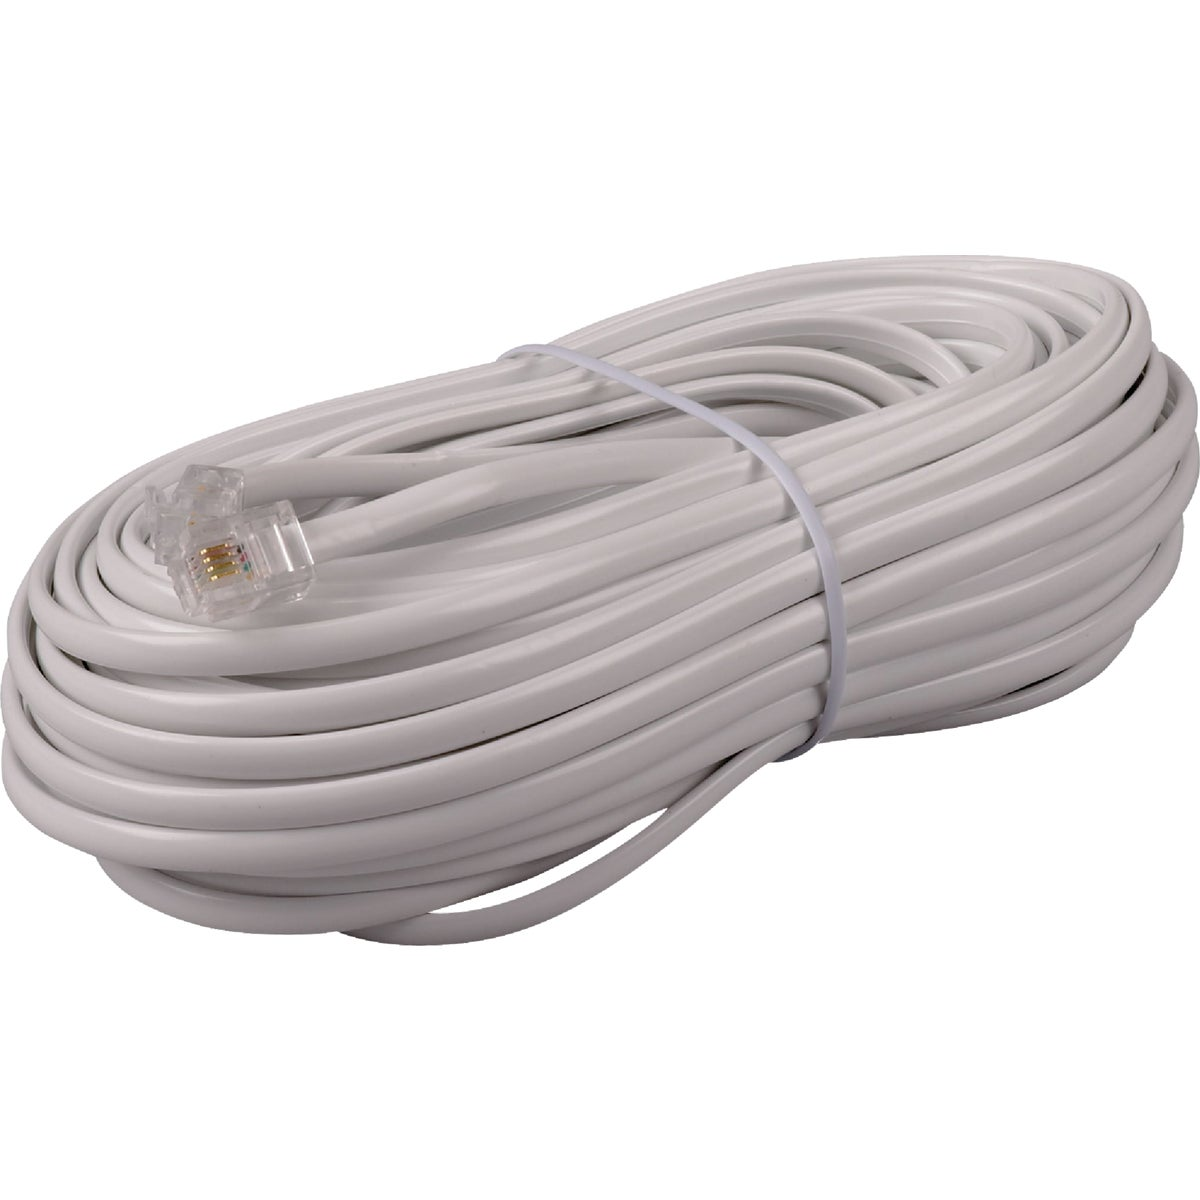 50' WHT PHONE LINE CORD - TP443WHRV by Audiovox Accessories